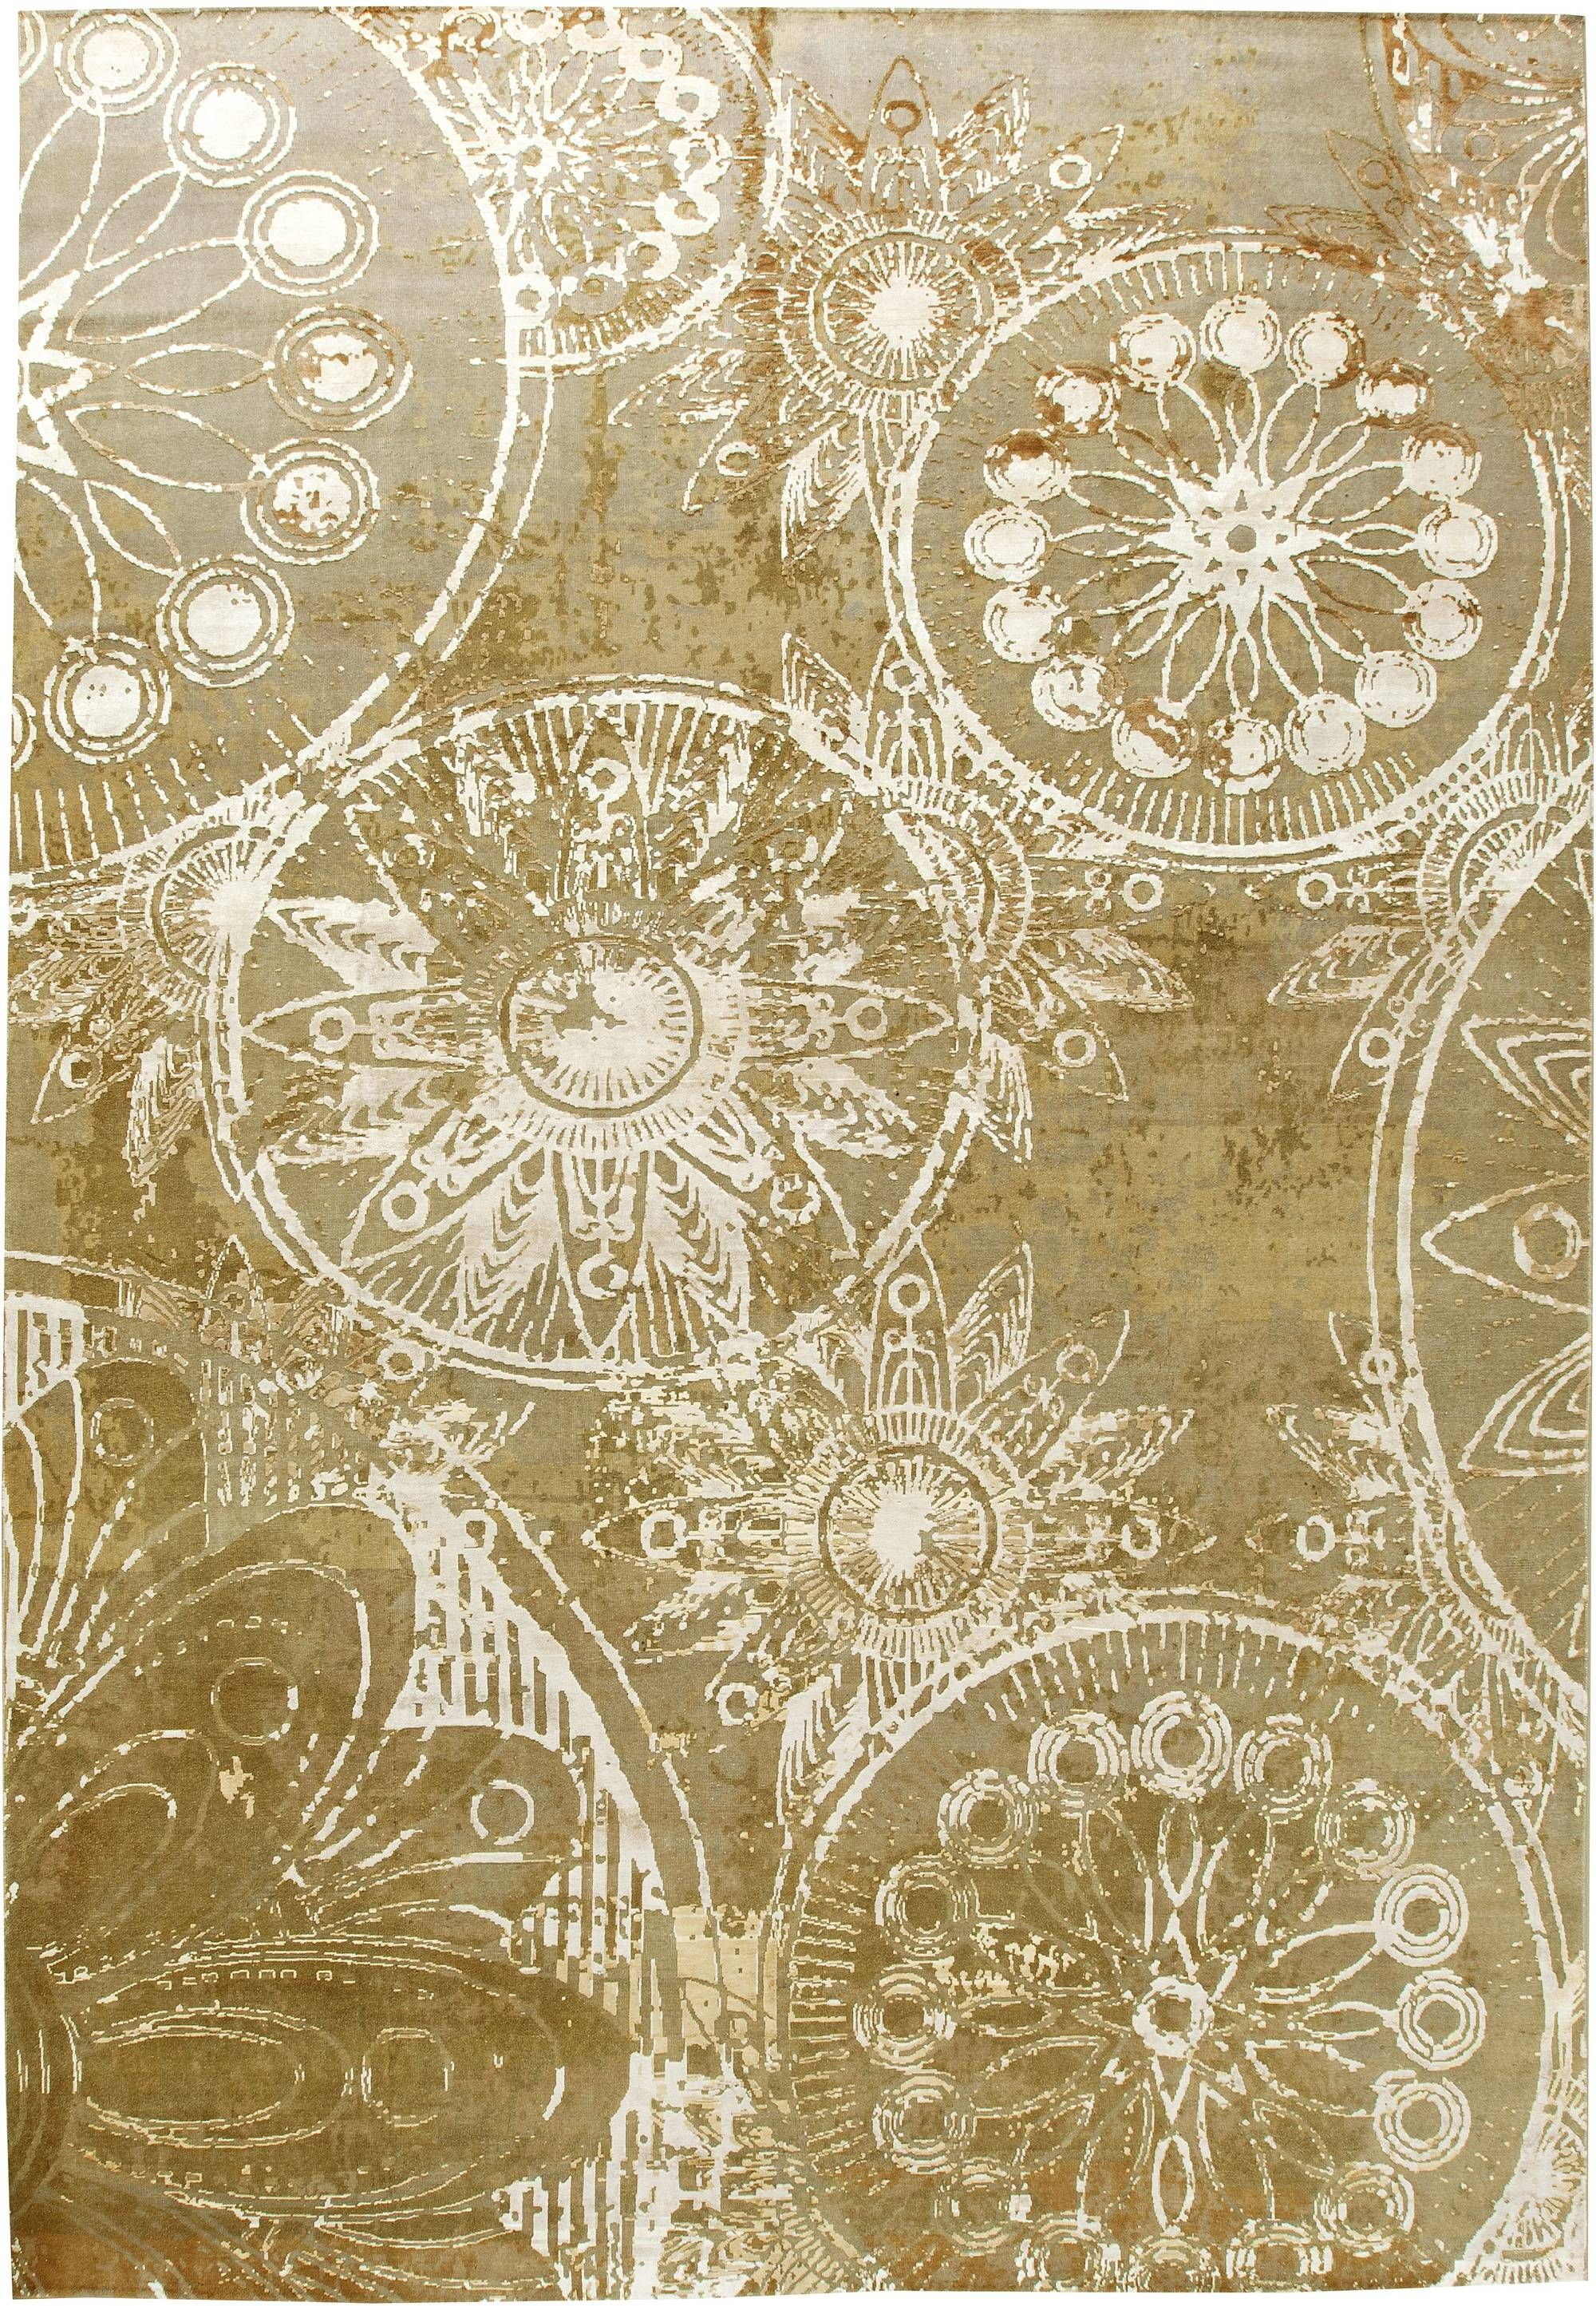 Contemporary Rug N11255 By Doris Leslie Blau